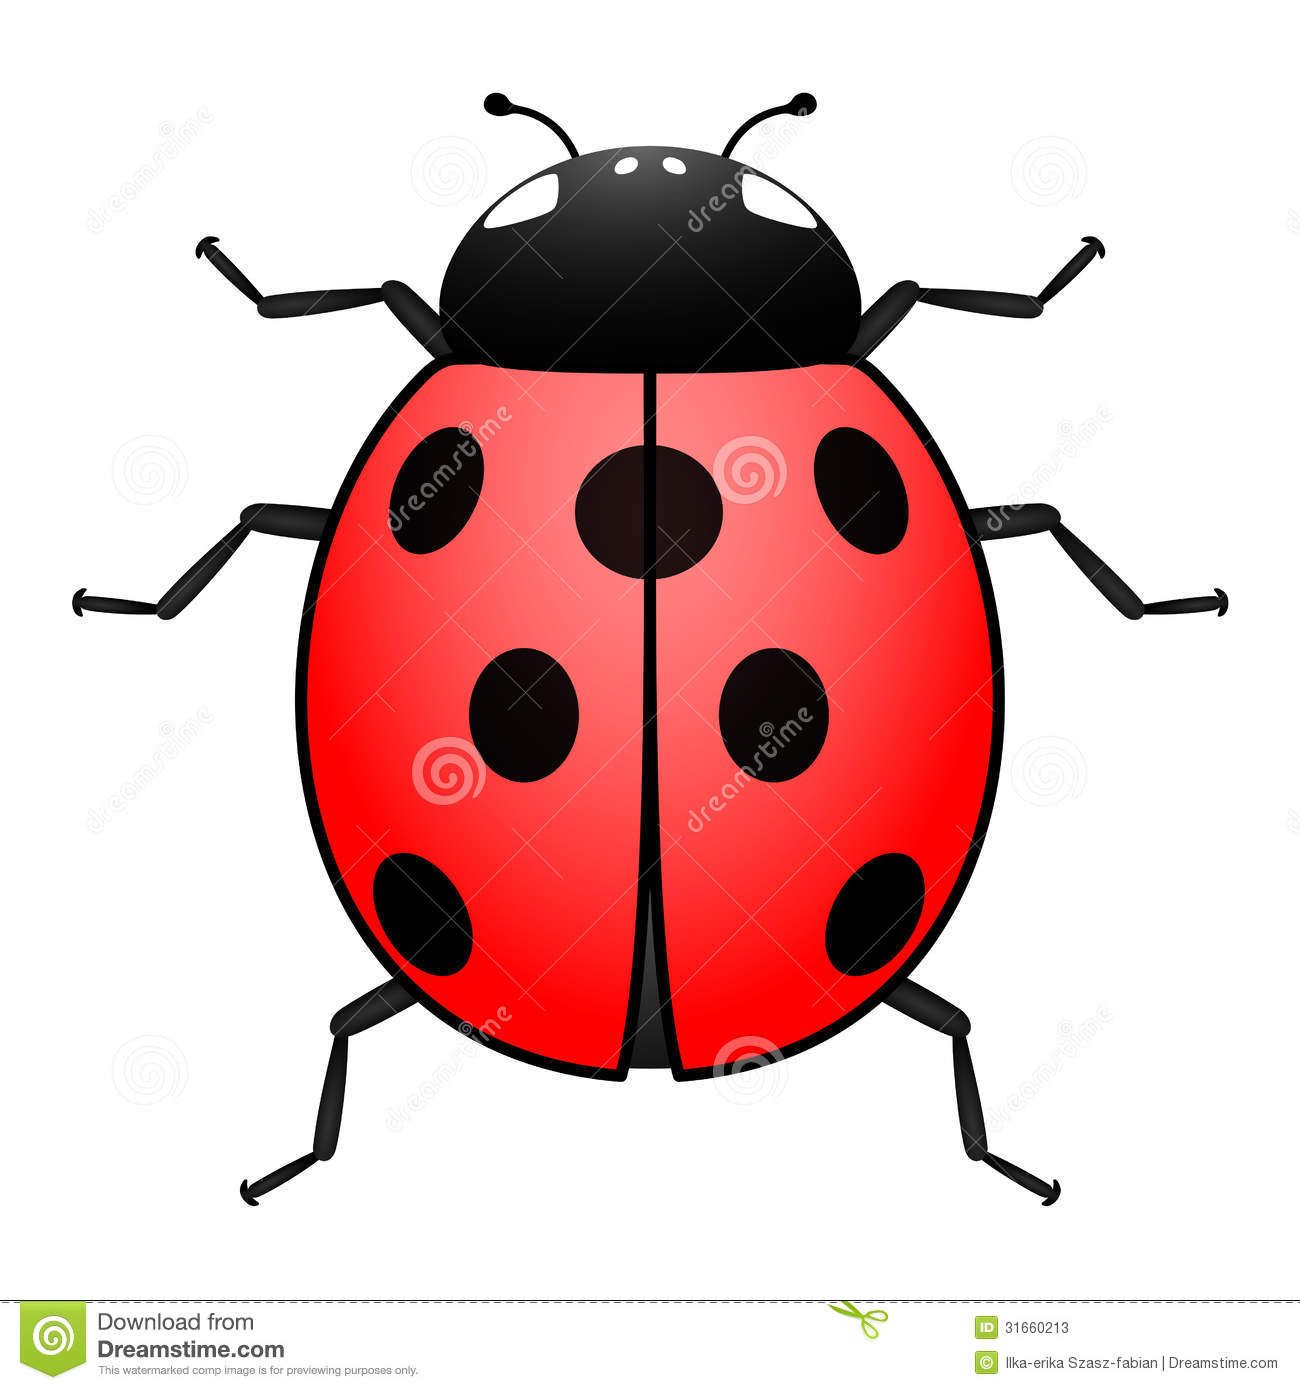 Ladybug Illustration Stock Photos - Image: 31660213